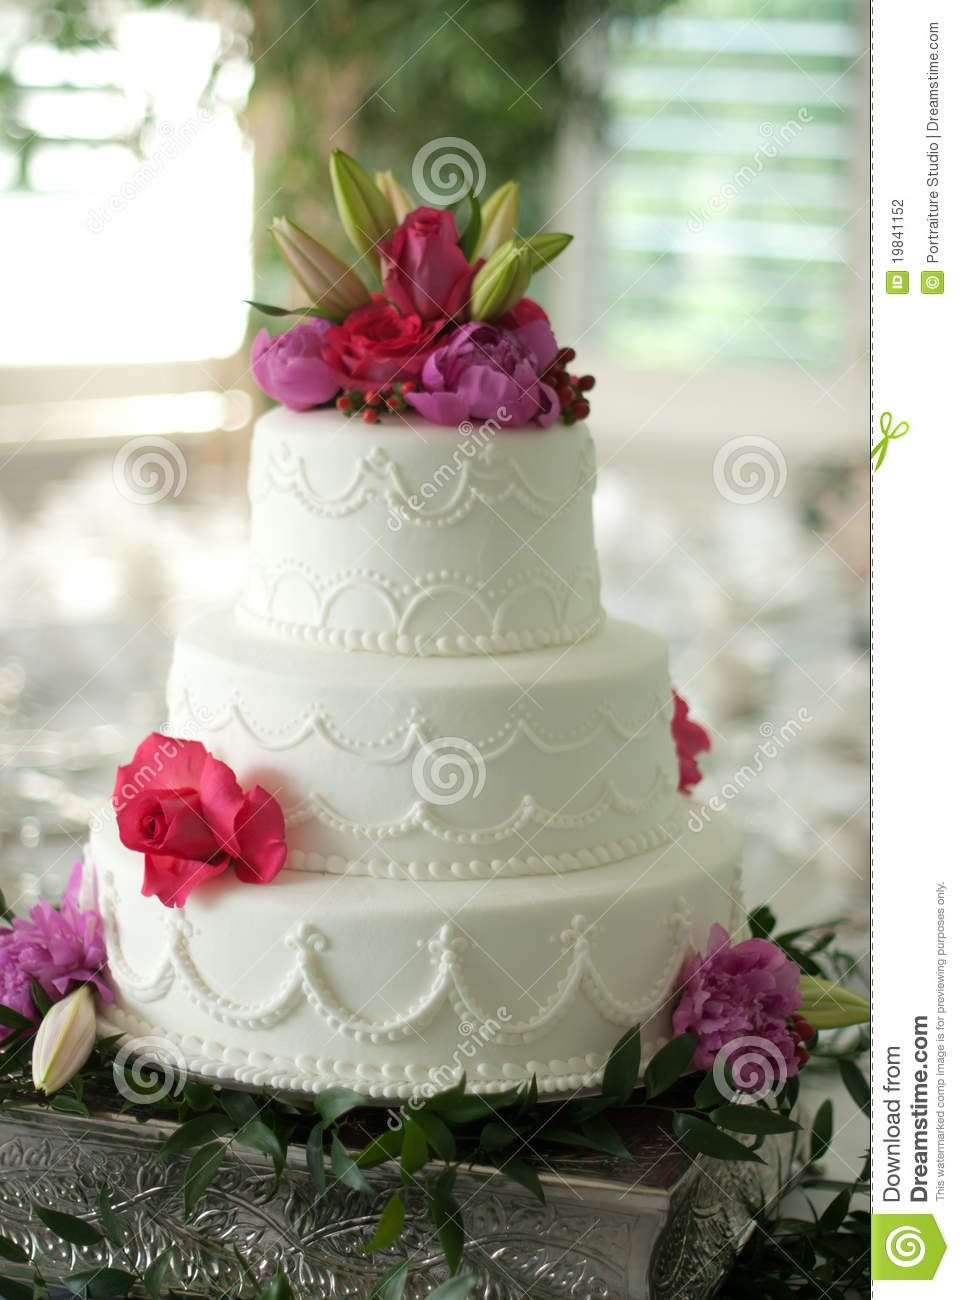 wedding cakes toppers flowers wedding cake with flower topper stock photo image 19841152 25733